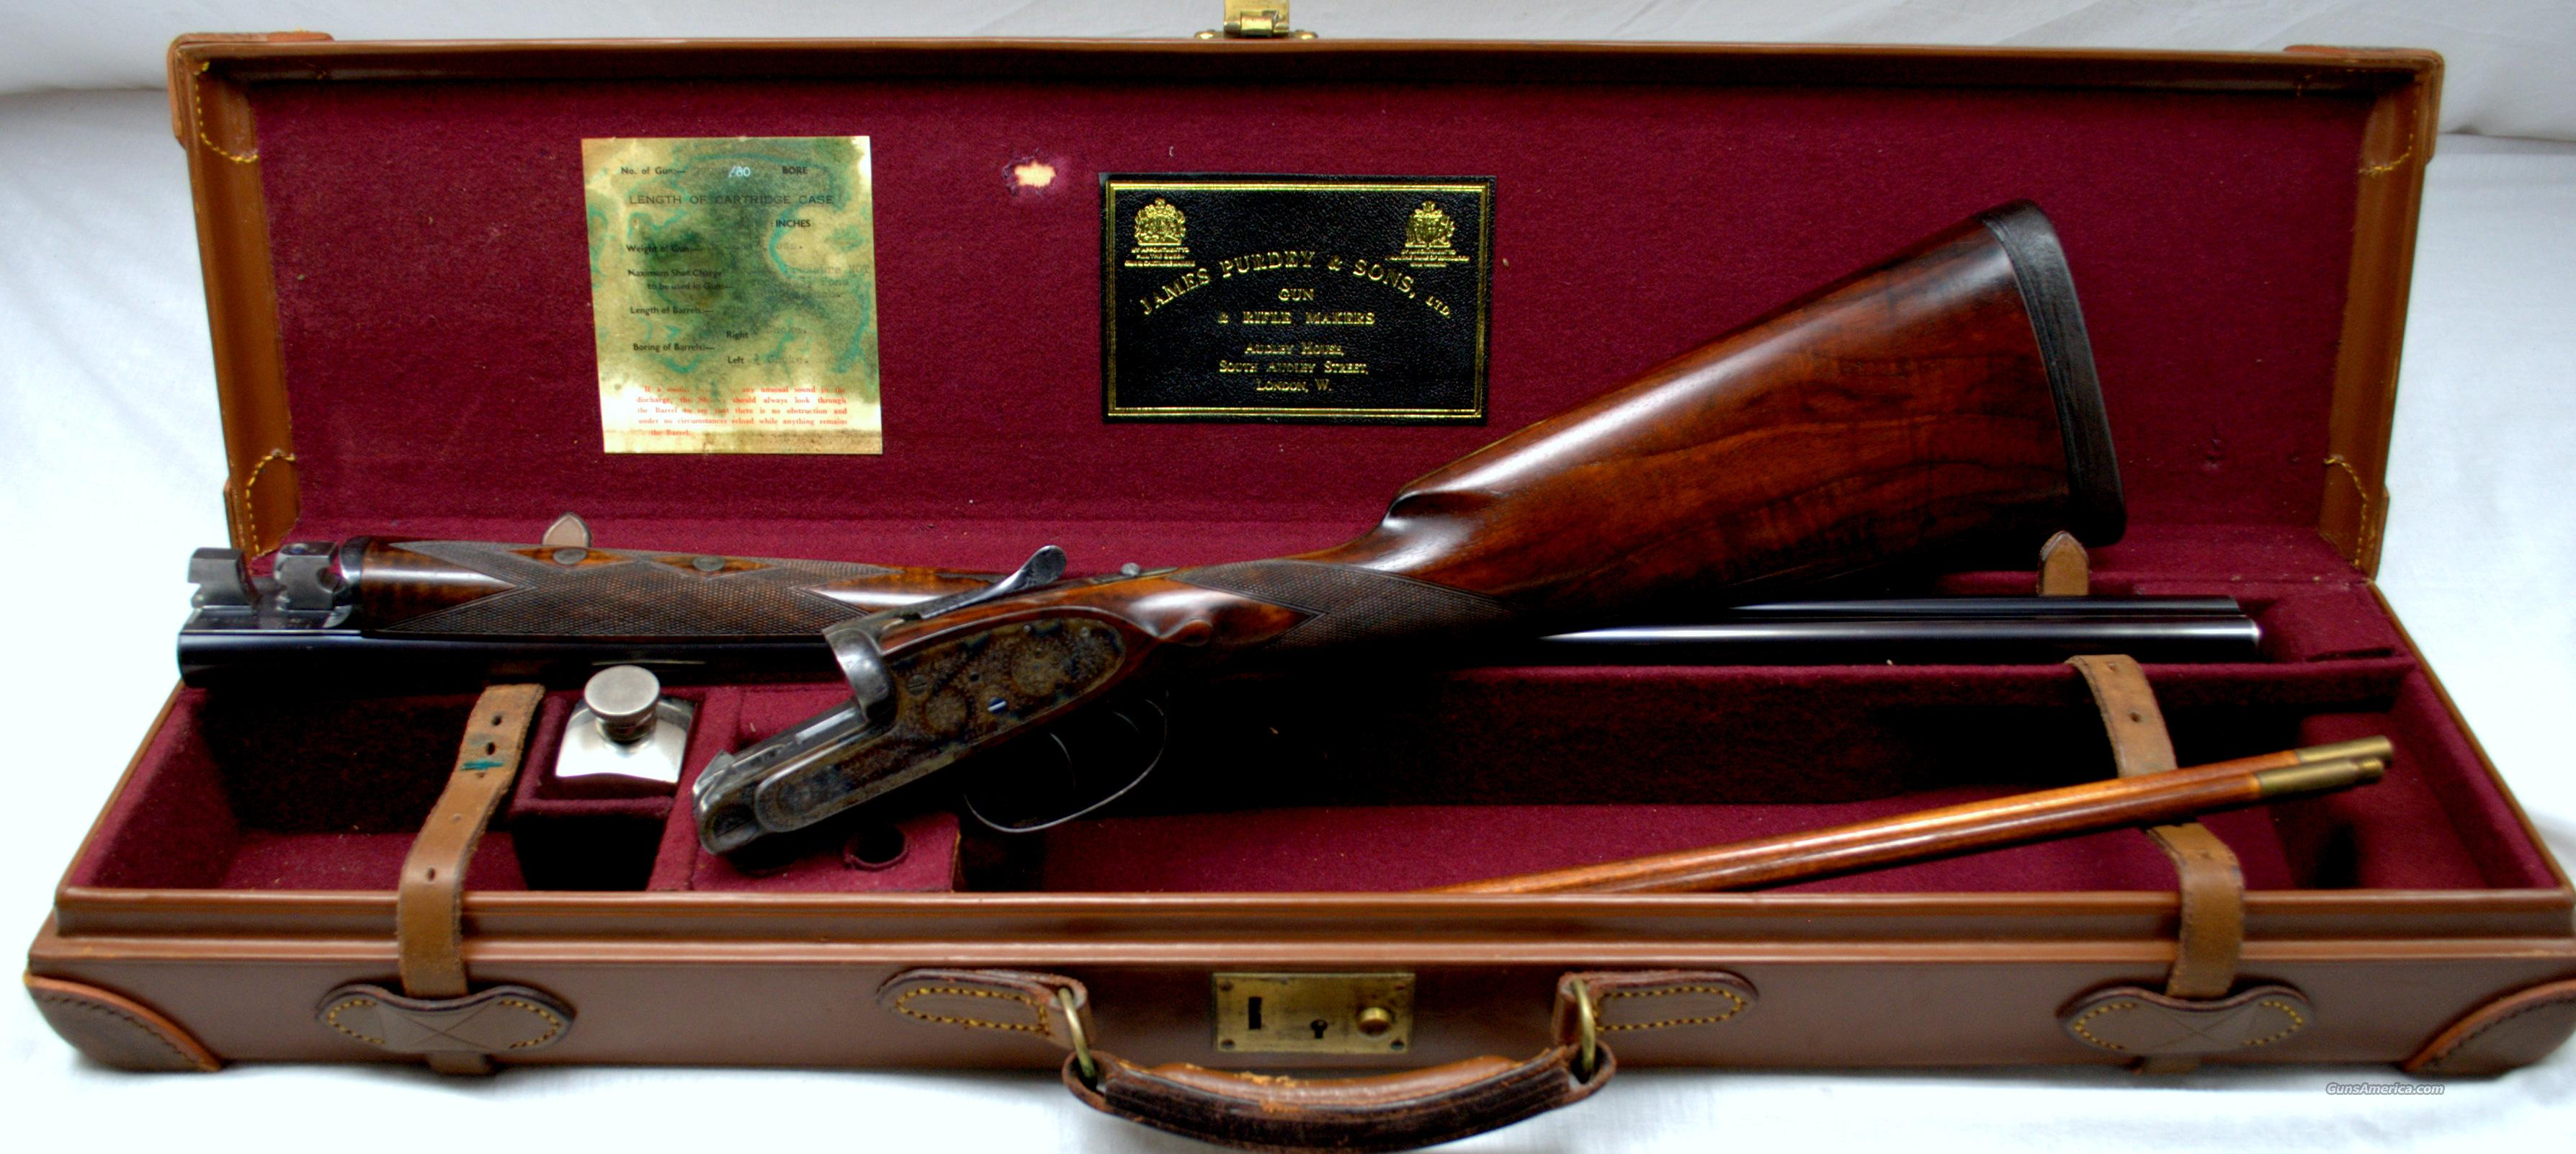 "James Purdey & Sons London England Best Gun 28ga ... 27""   Guns > Shotguns > Purdy Shotguns"